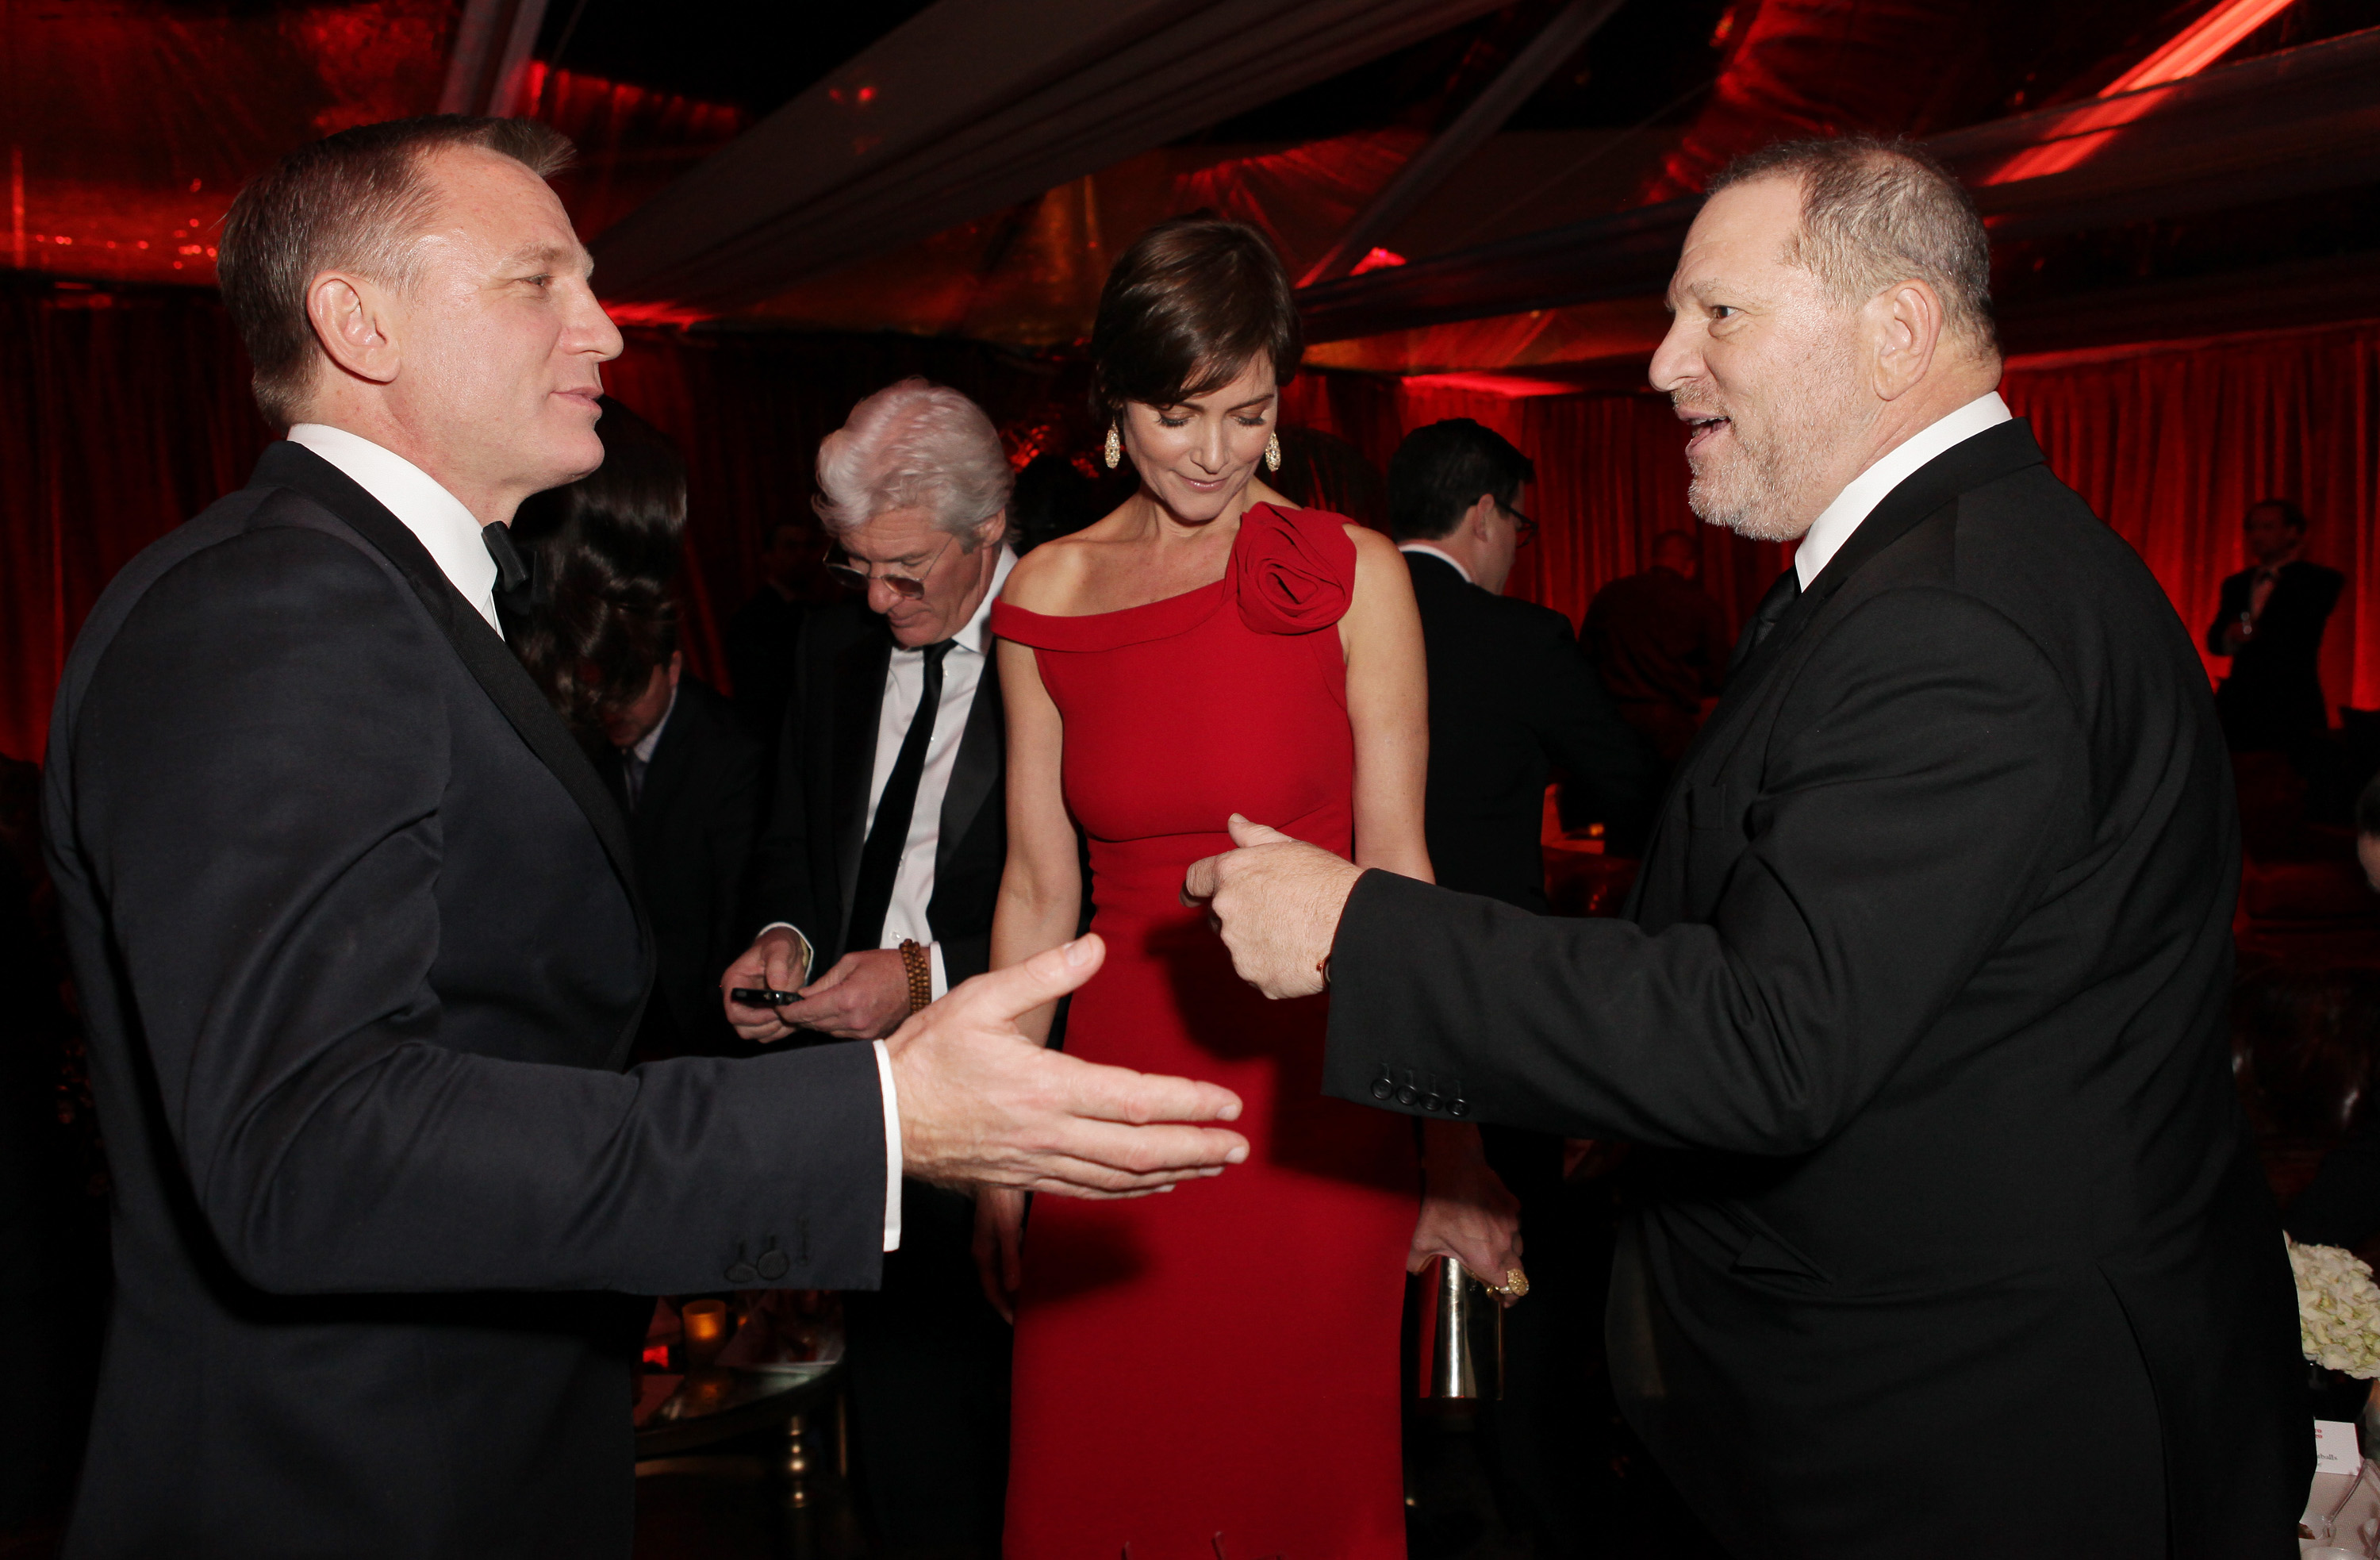 Host Harvey Weinstein greeted Mr. Bond himself, Daniel Craig.